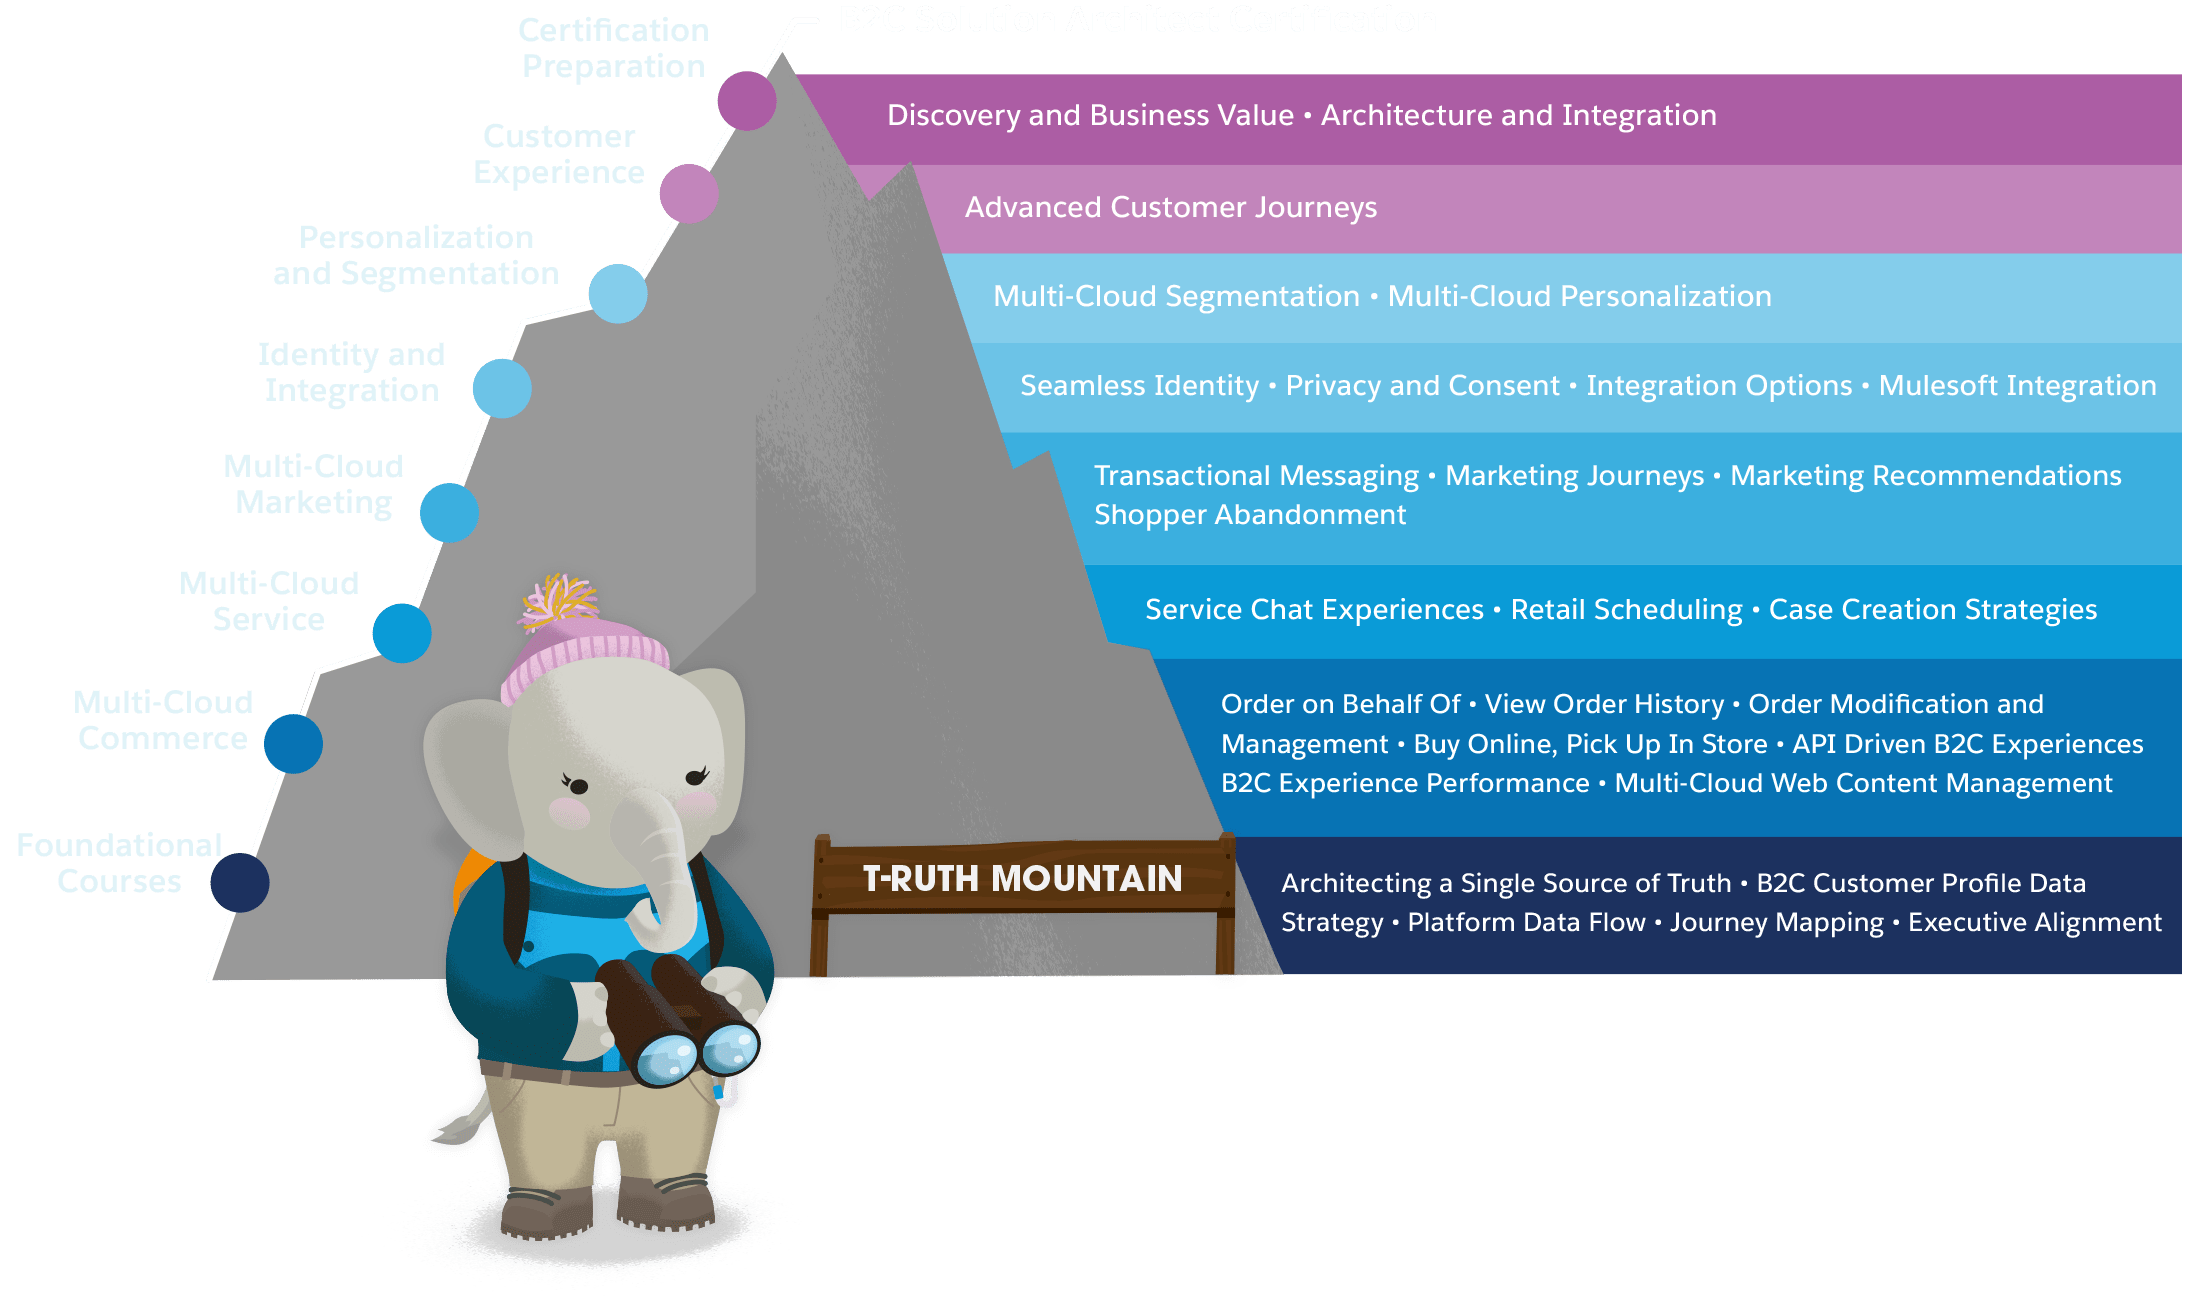 The path to B2C Solution Architect Certification